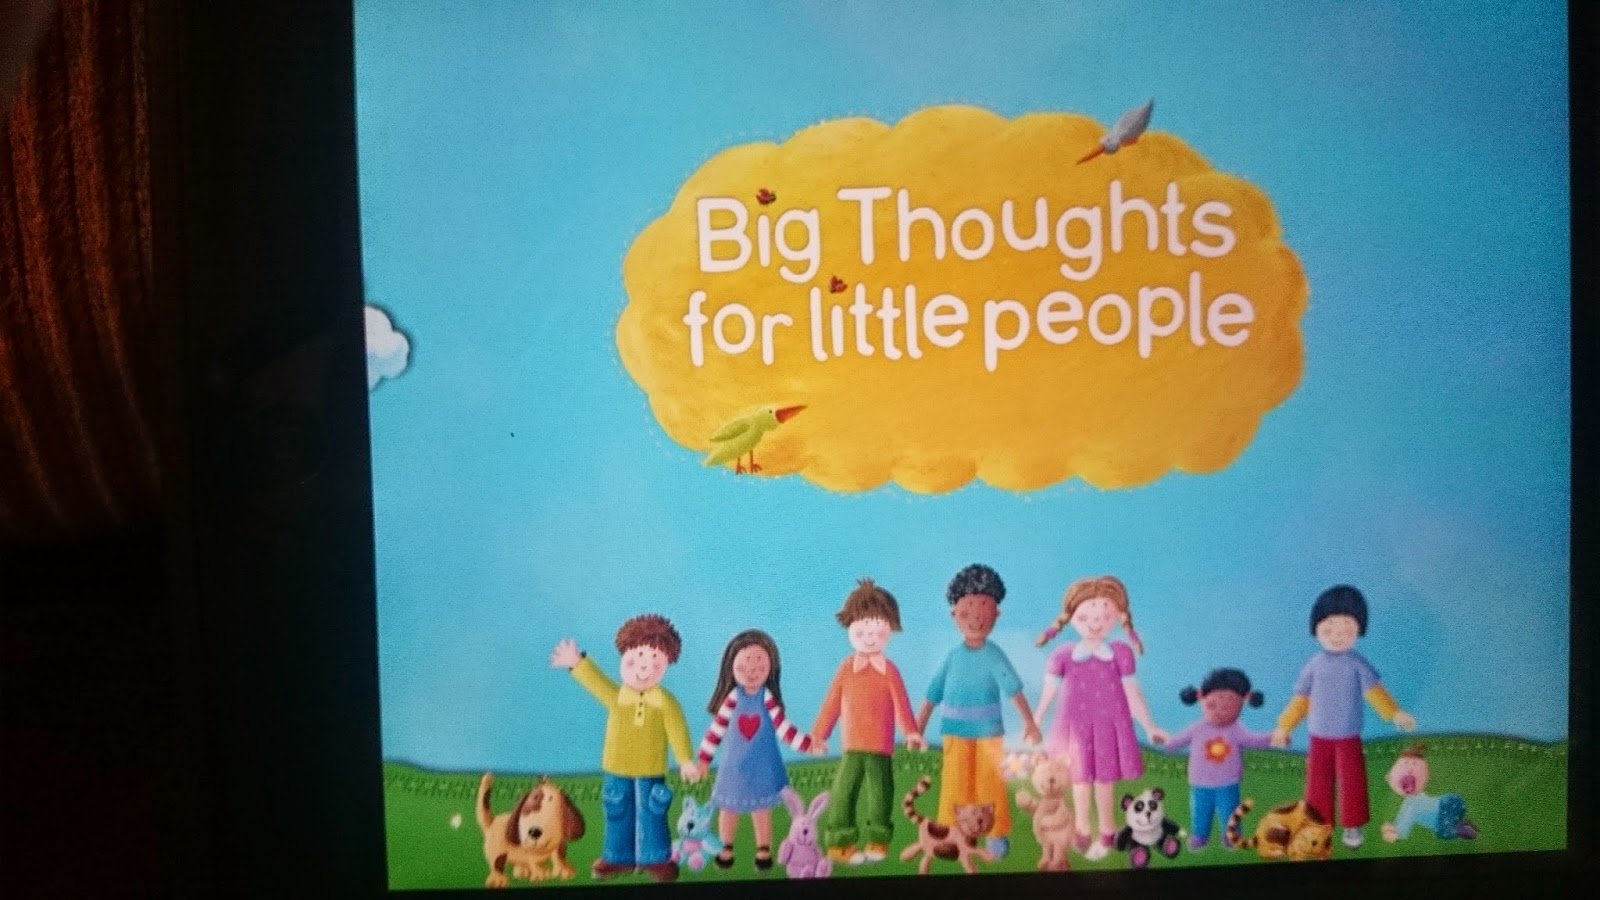 Big Thoughts for Little People App Review